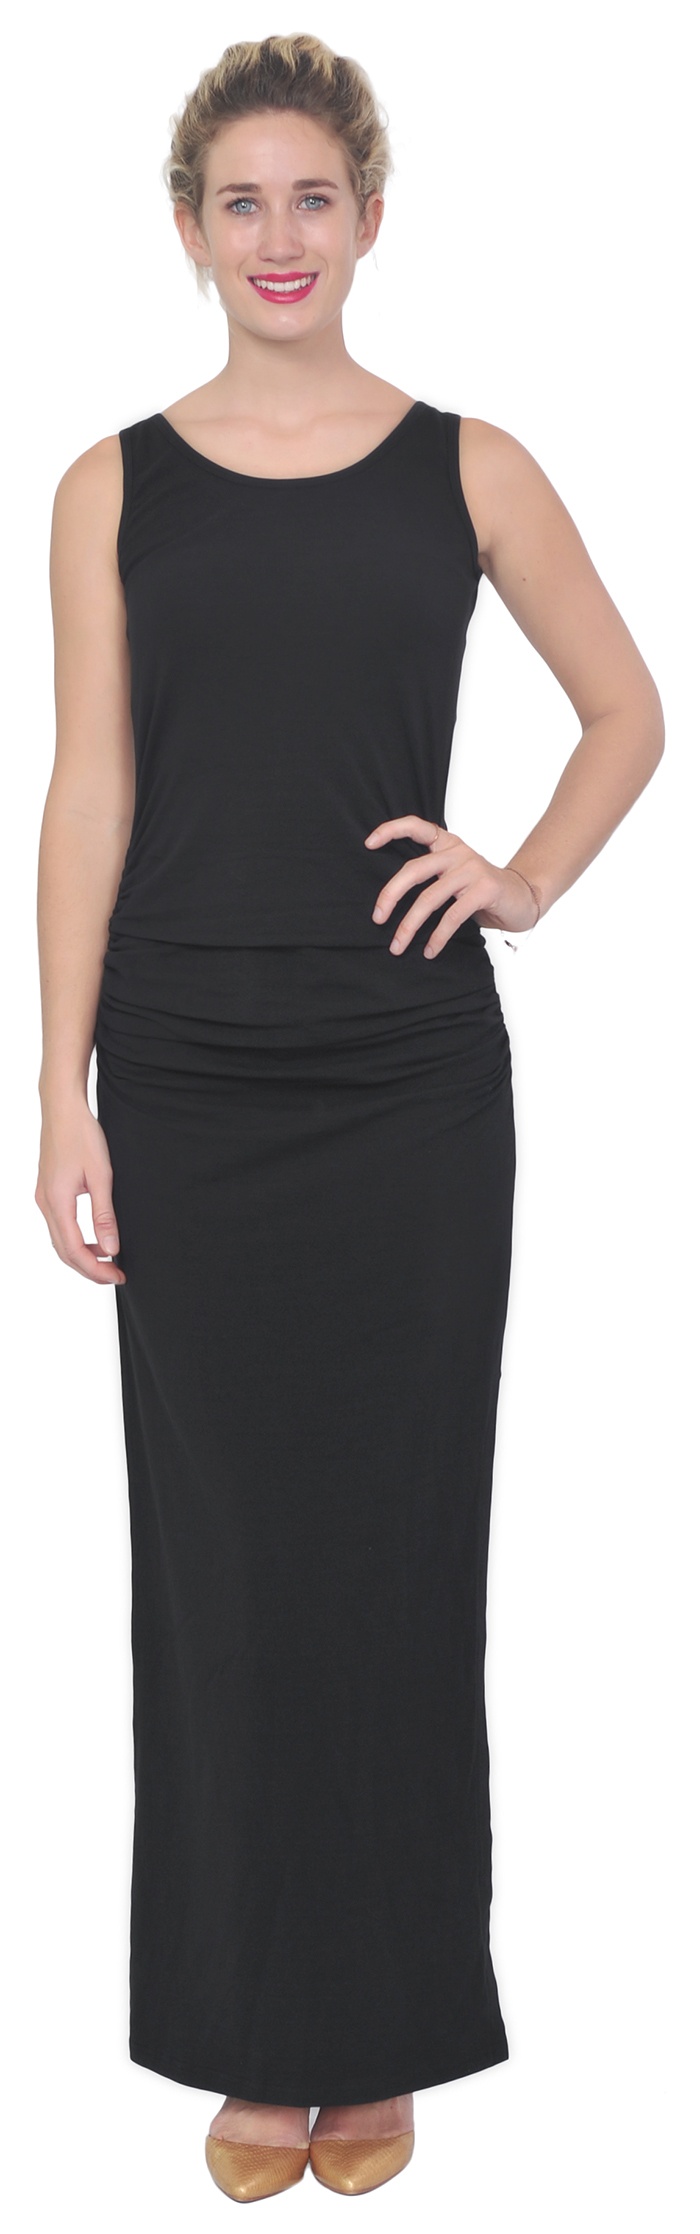 Find great deals on eBay for womens size 20 dresses. Shop with confidence.